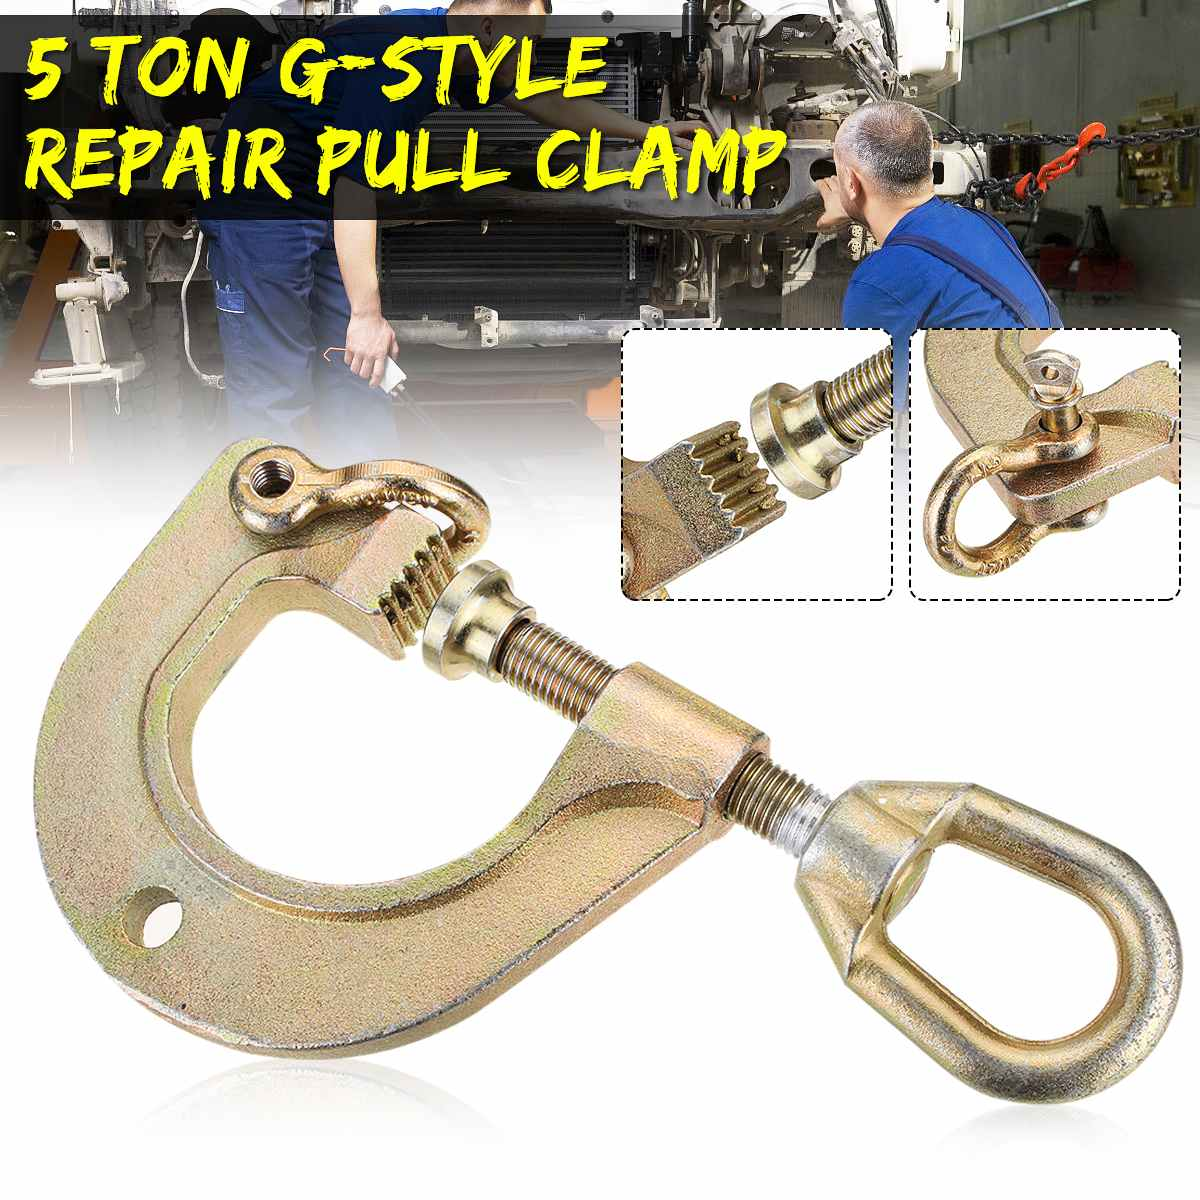 Car G-Style 2-WAY Puller Clamp Frame Back Self-Tightening Auto Body Repair Pull Frame Work